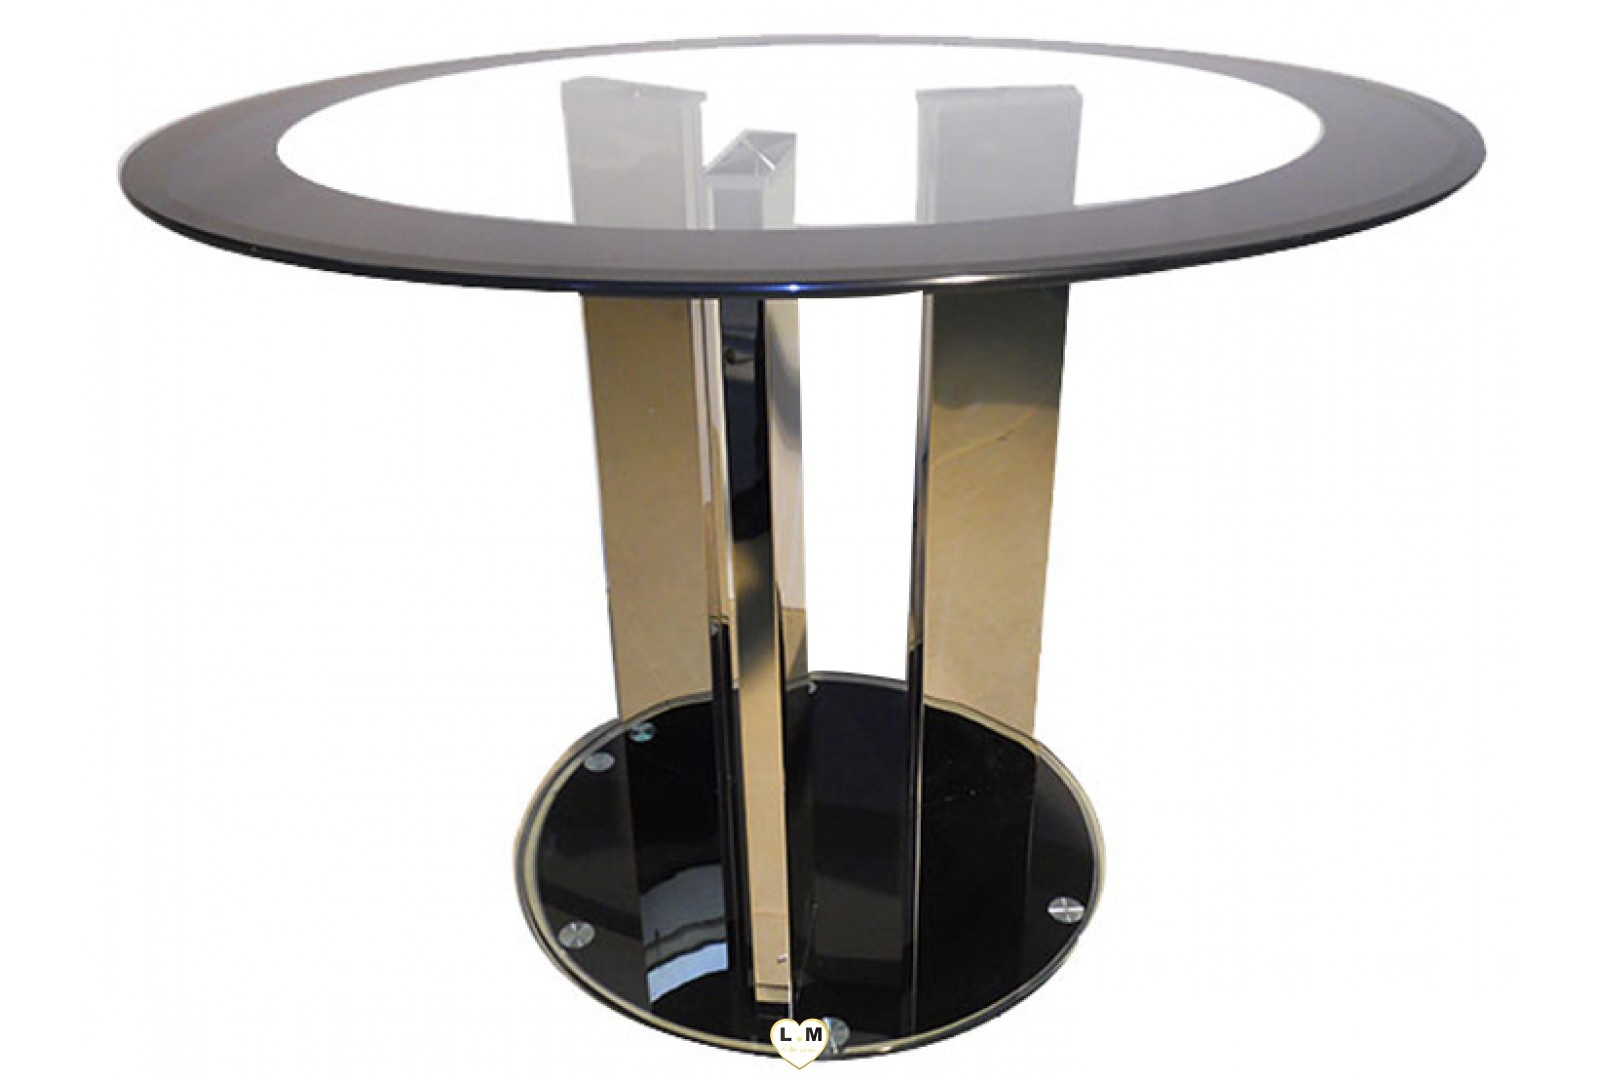 t887 table salle a manger ronde verre transparent lignemeuble com. Black Bedroom Furniture Sets. Home Design Ideas